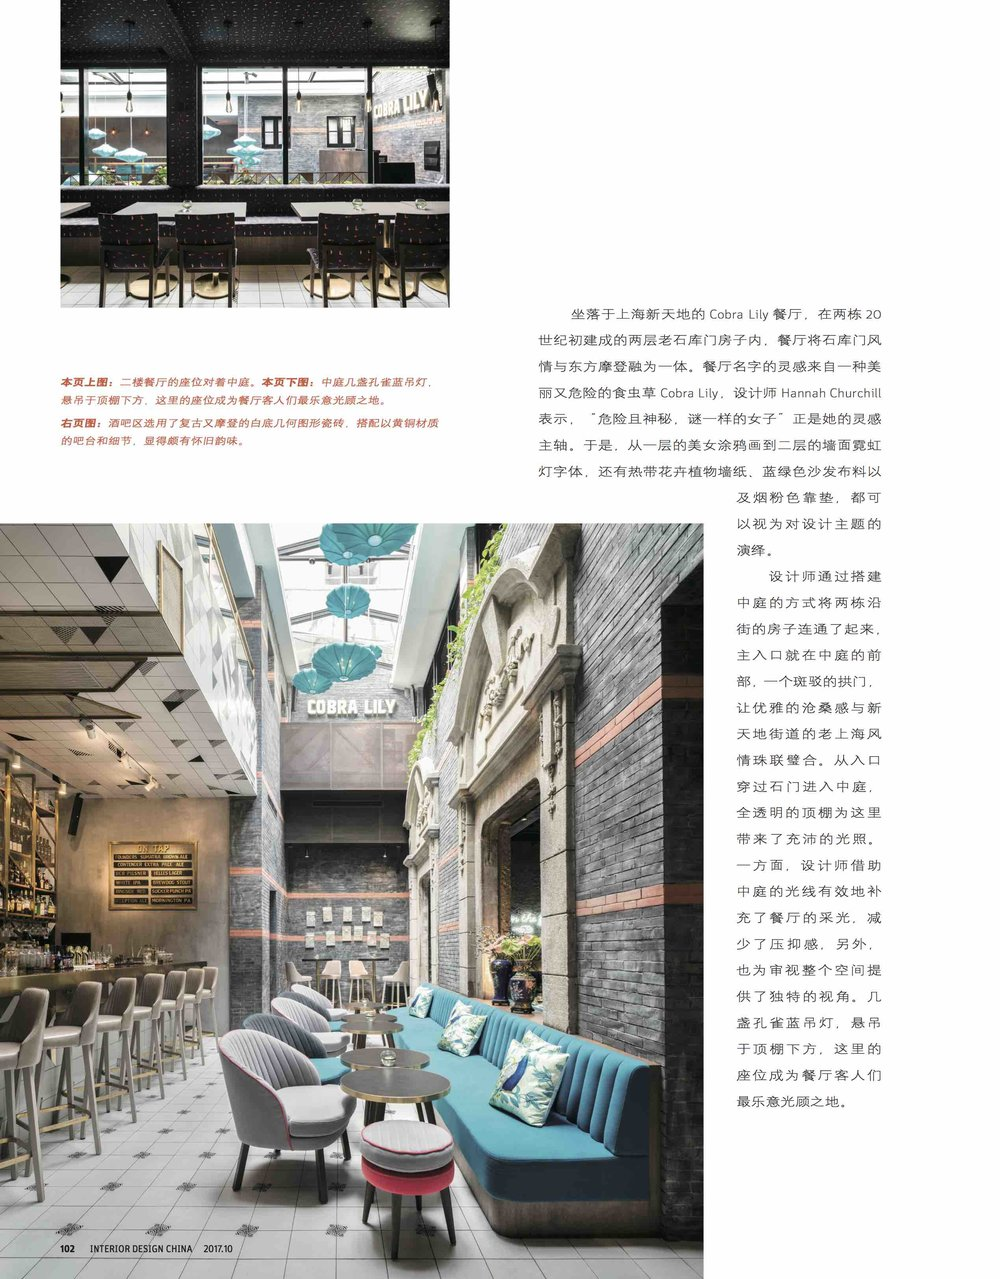 Interior Design China Oct 2017_Cobra Lily_3.jpg